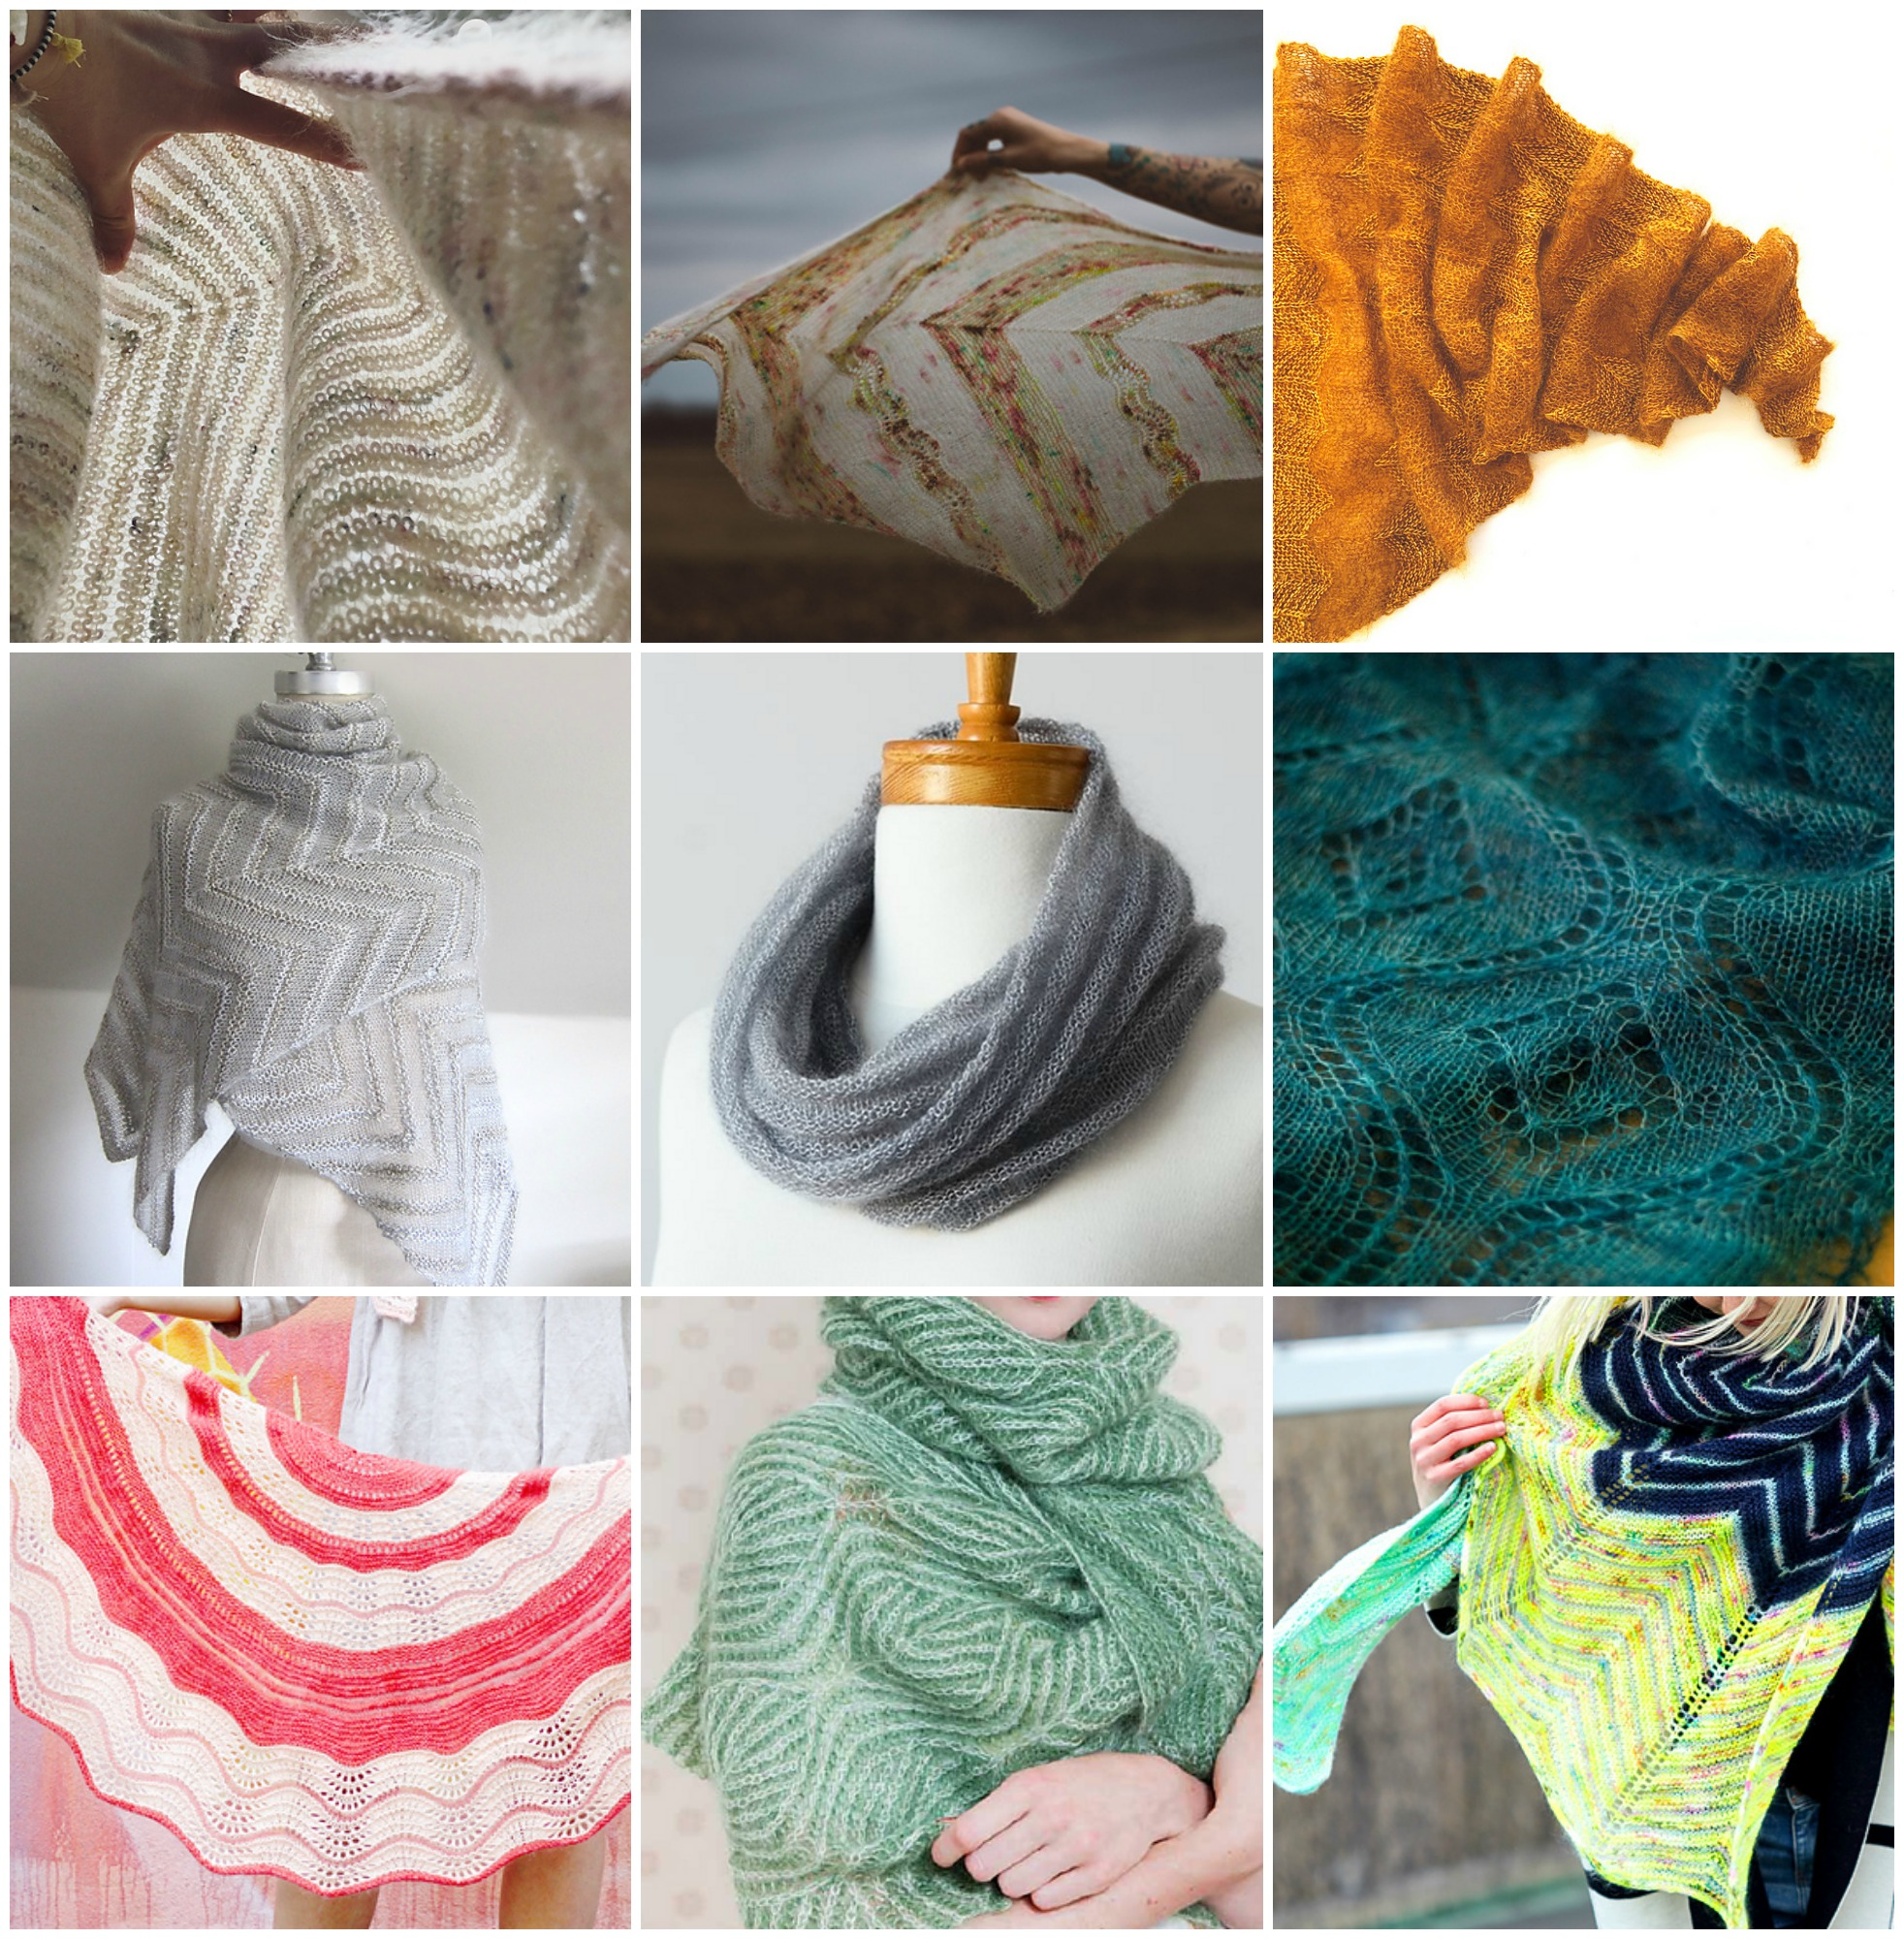 Truffula Tuft  by Webster Street Knittery,  Birds of a Feather  by Andrea Mowry,  Cheri Chevron Shawl  by Ambah O'Brien   Chevron Cloud  by Espace Tricot,  Welted Cowl  by Jane Richmond,  Seascape Stole  by Kieran Foley   Belu  by Camille Descoteaux,  Willow  by Nancy Marchant,  Baseline  by Beata Jezek